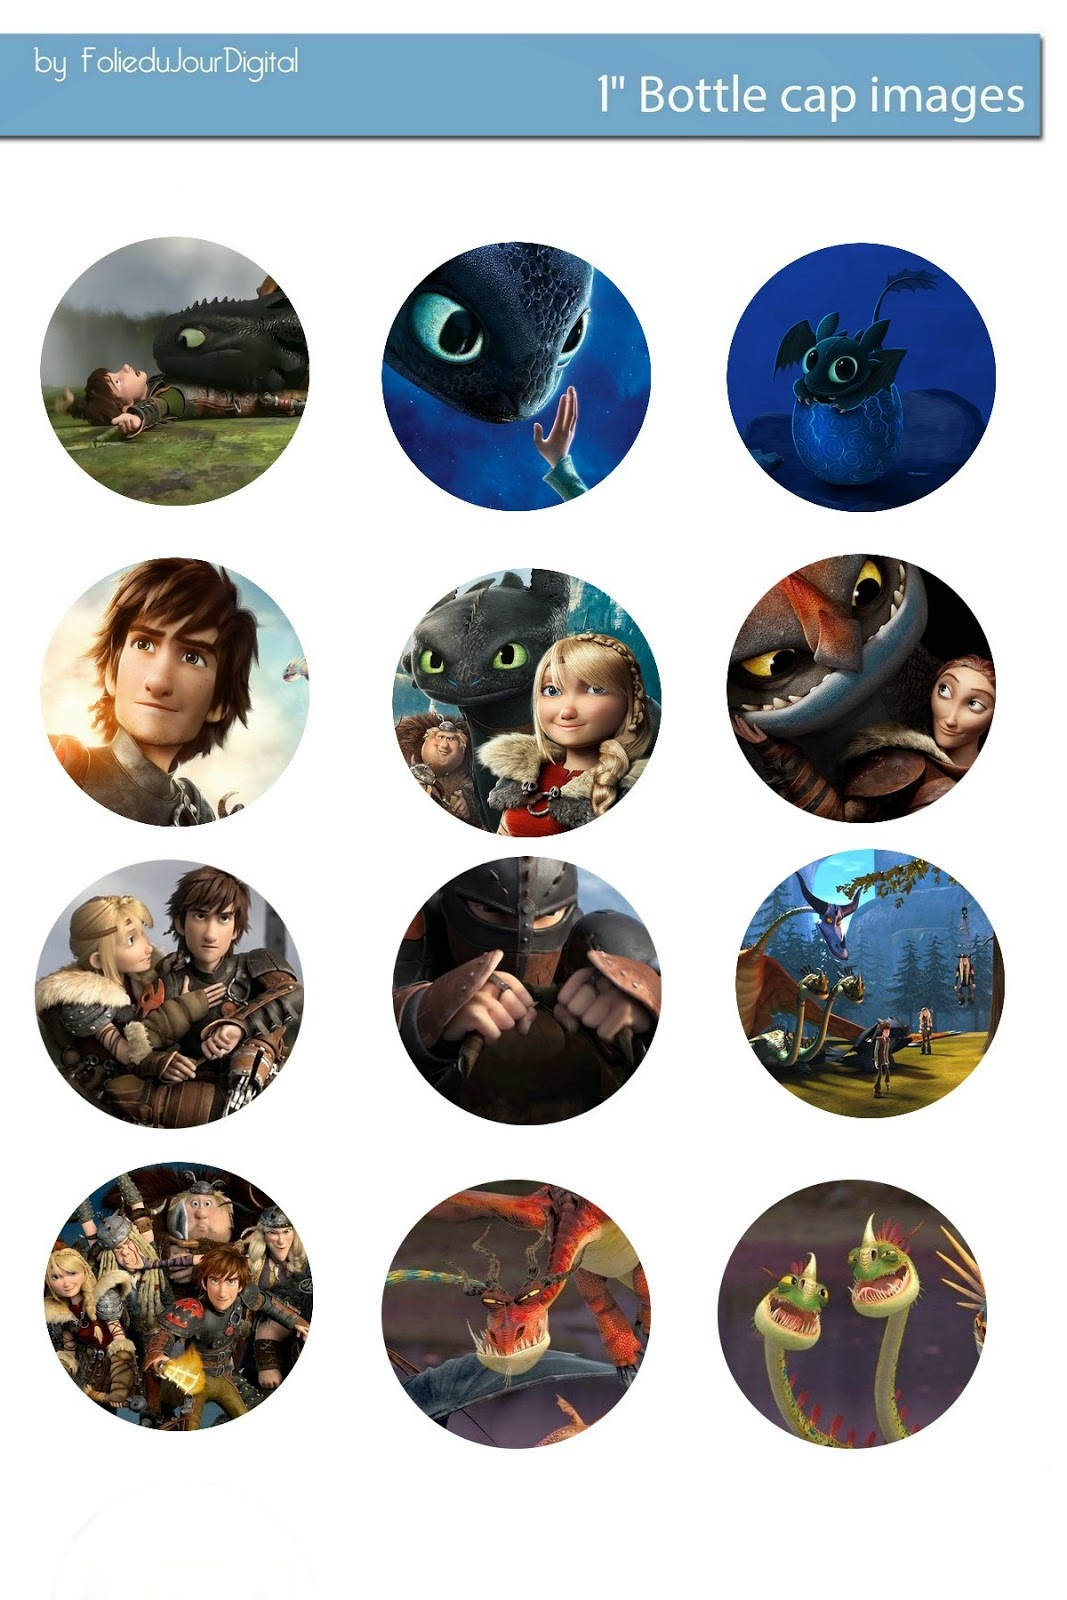 free bottle cap images how to train your dragon free digital